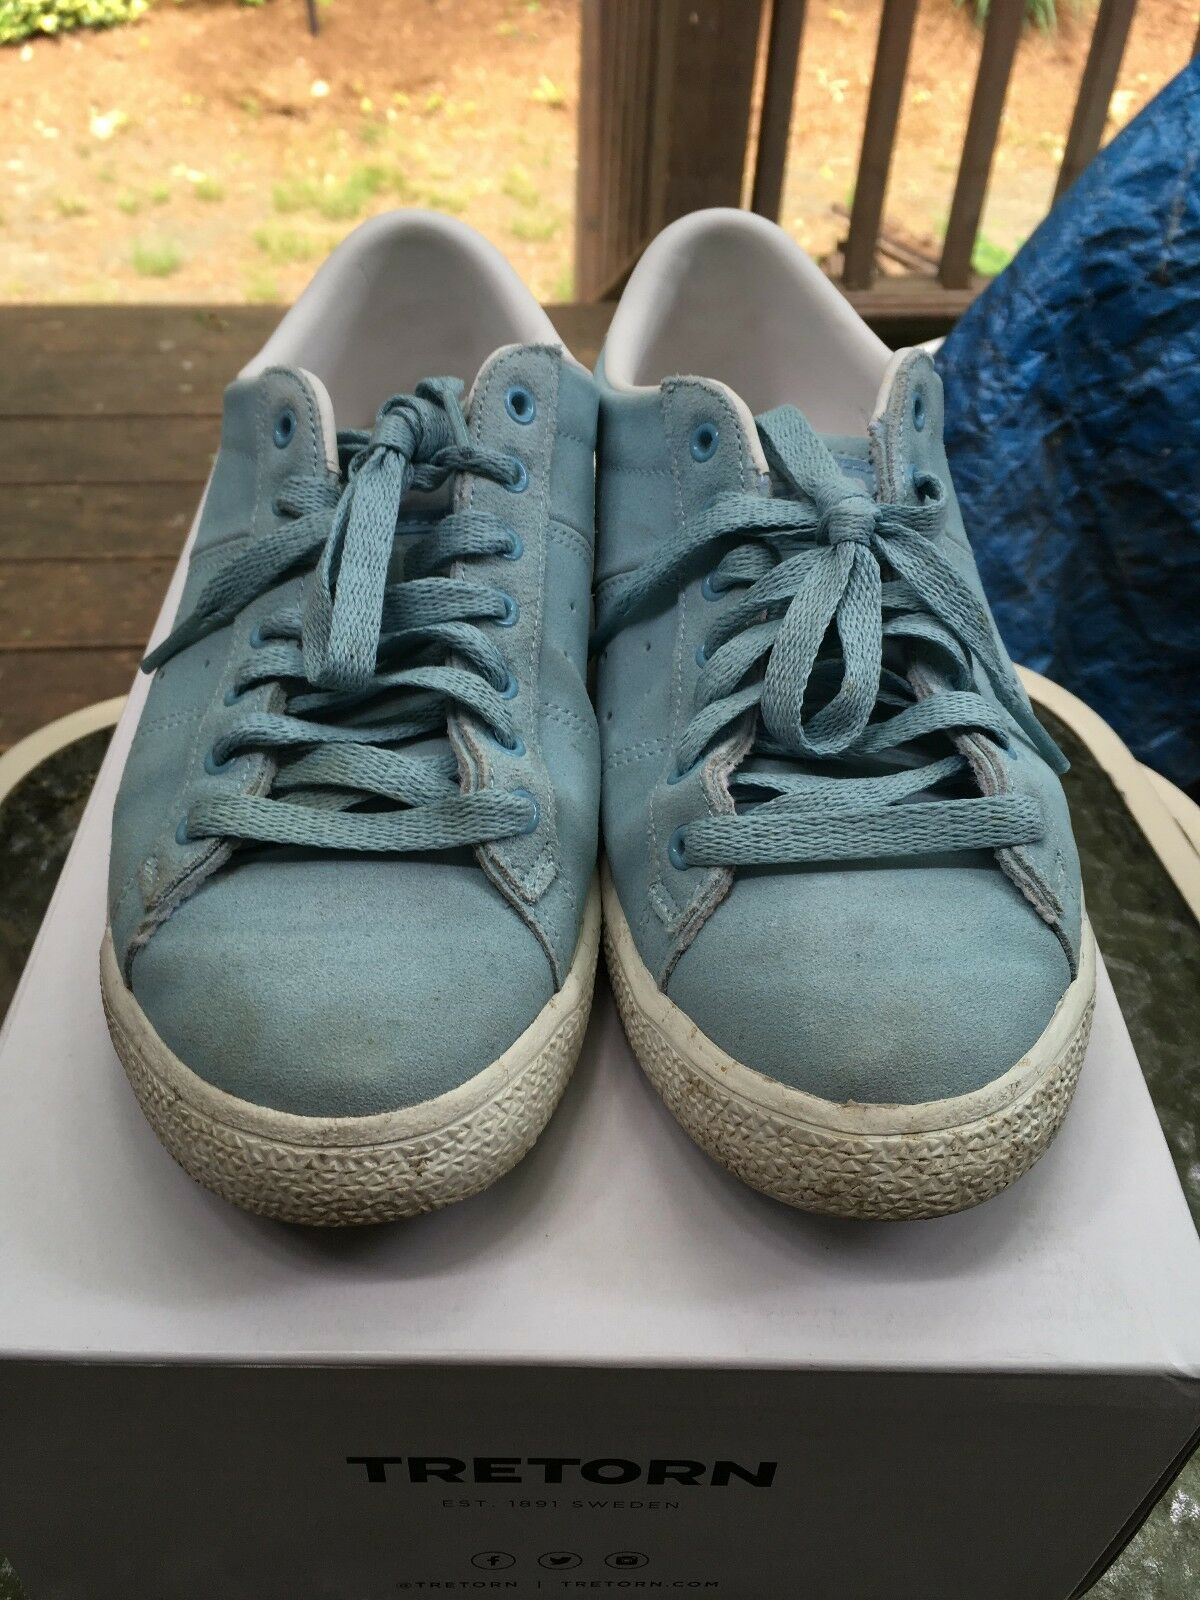 Women blue Onitsuka Tiger casual shoes size 7 Comfortable and good-looking